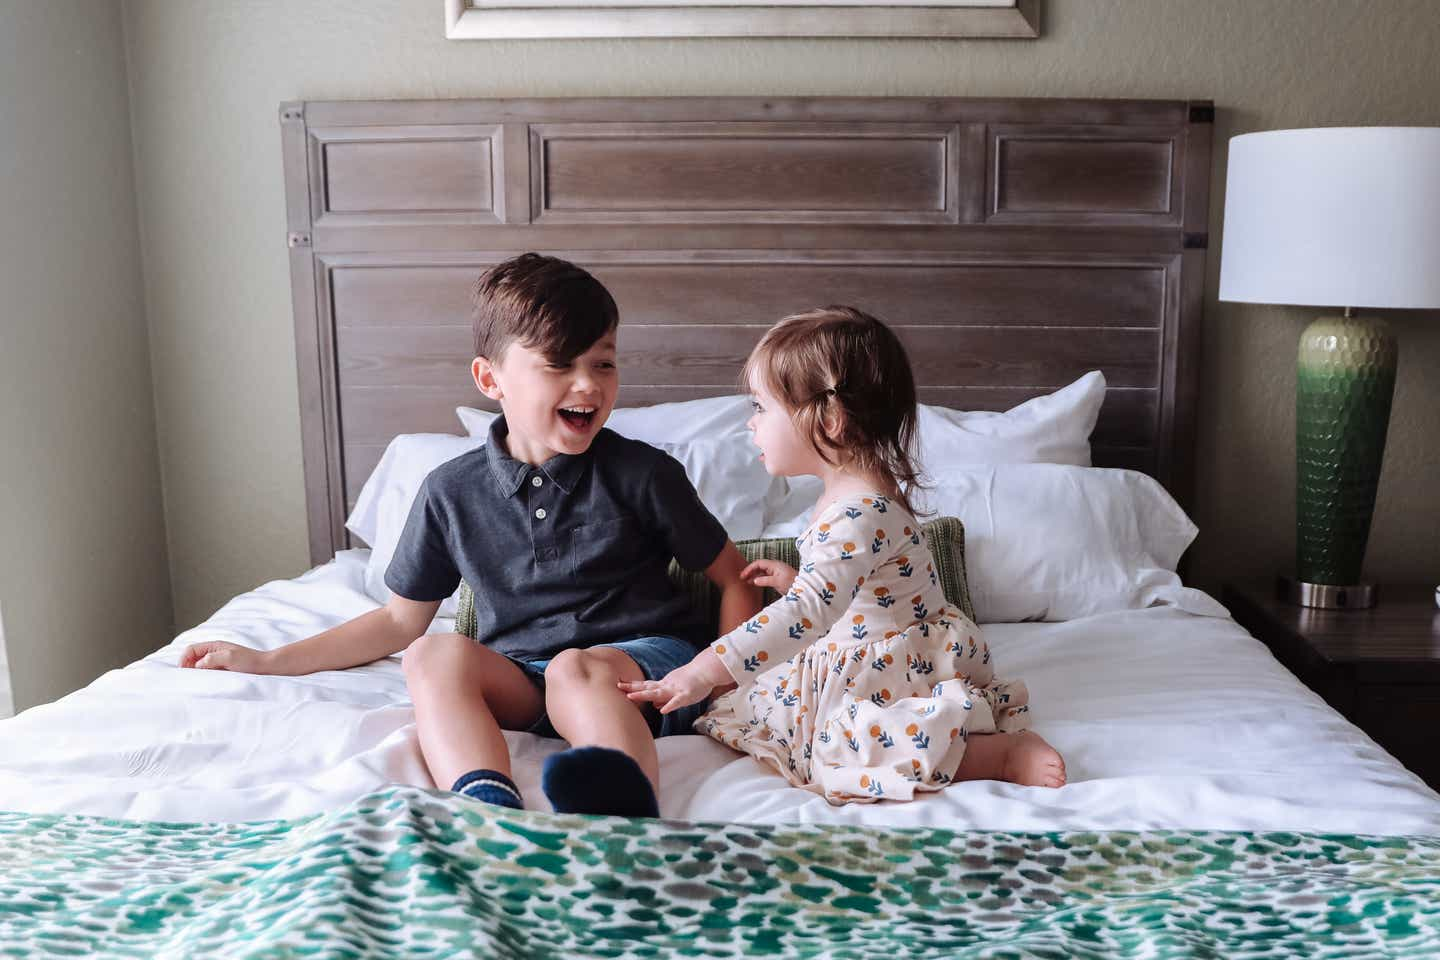 Mia's kids on a bed